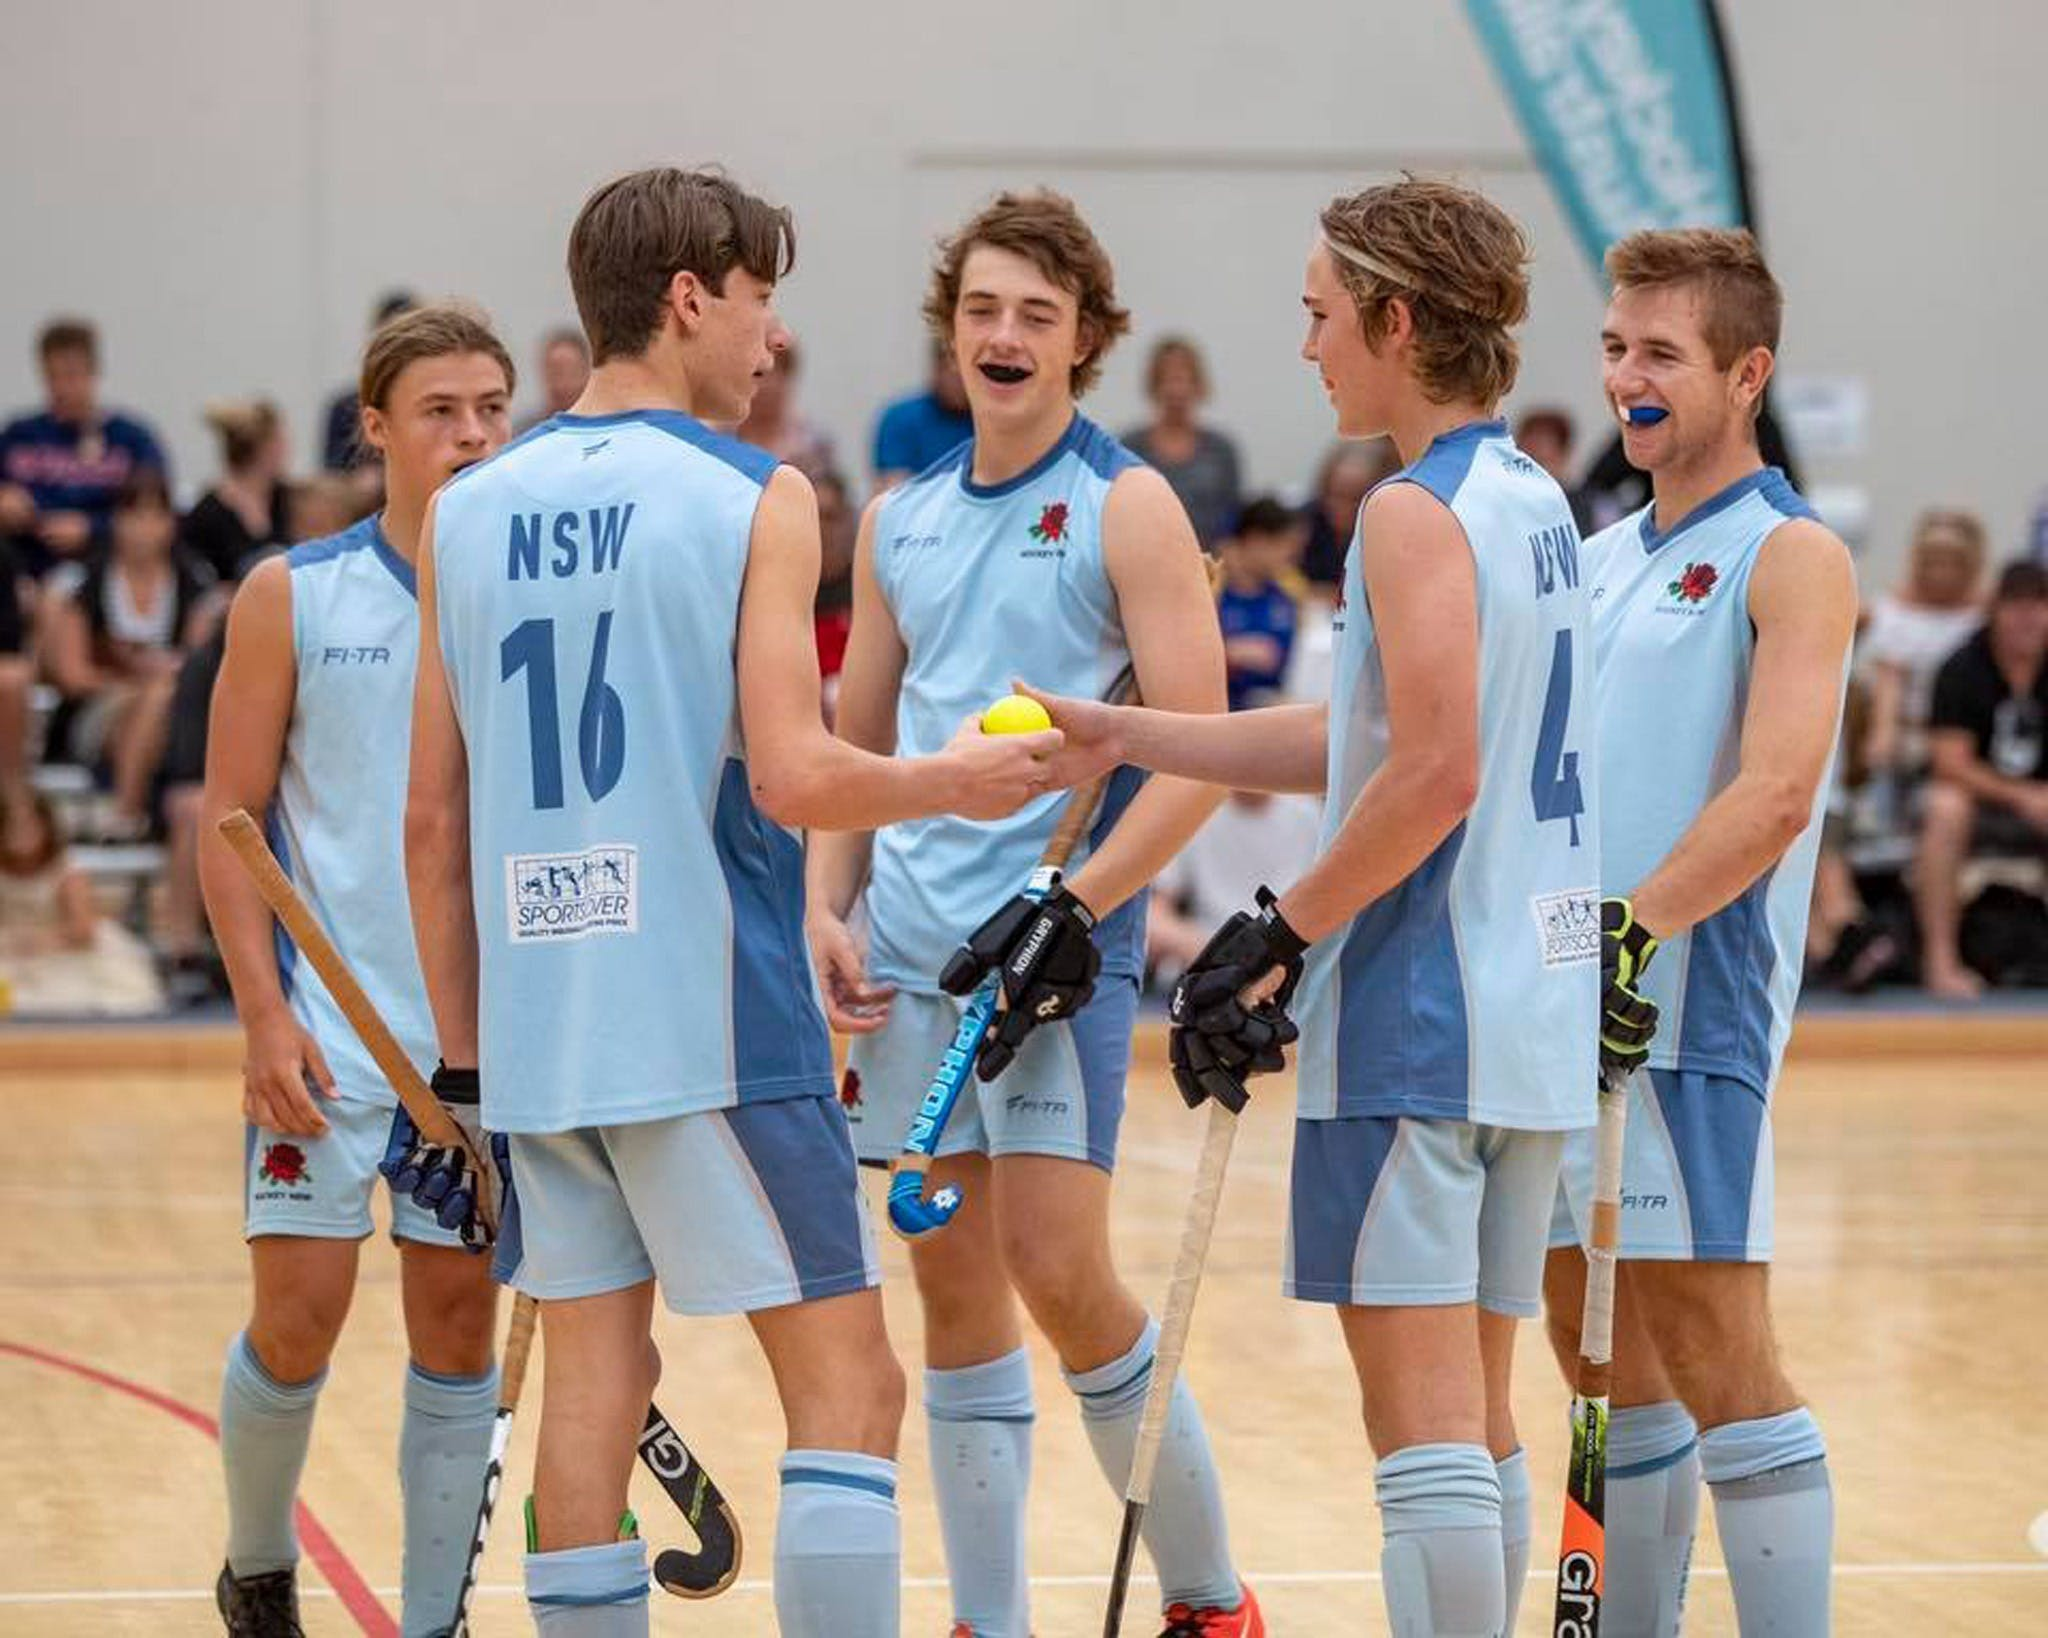 Hockey NSW Indoor State Championship  Open Men - Townsville Tourism